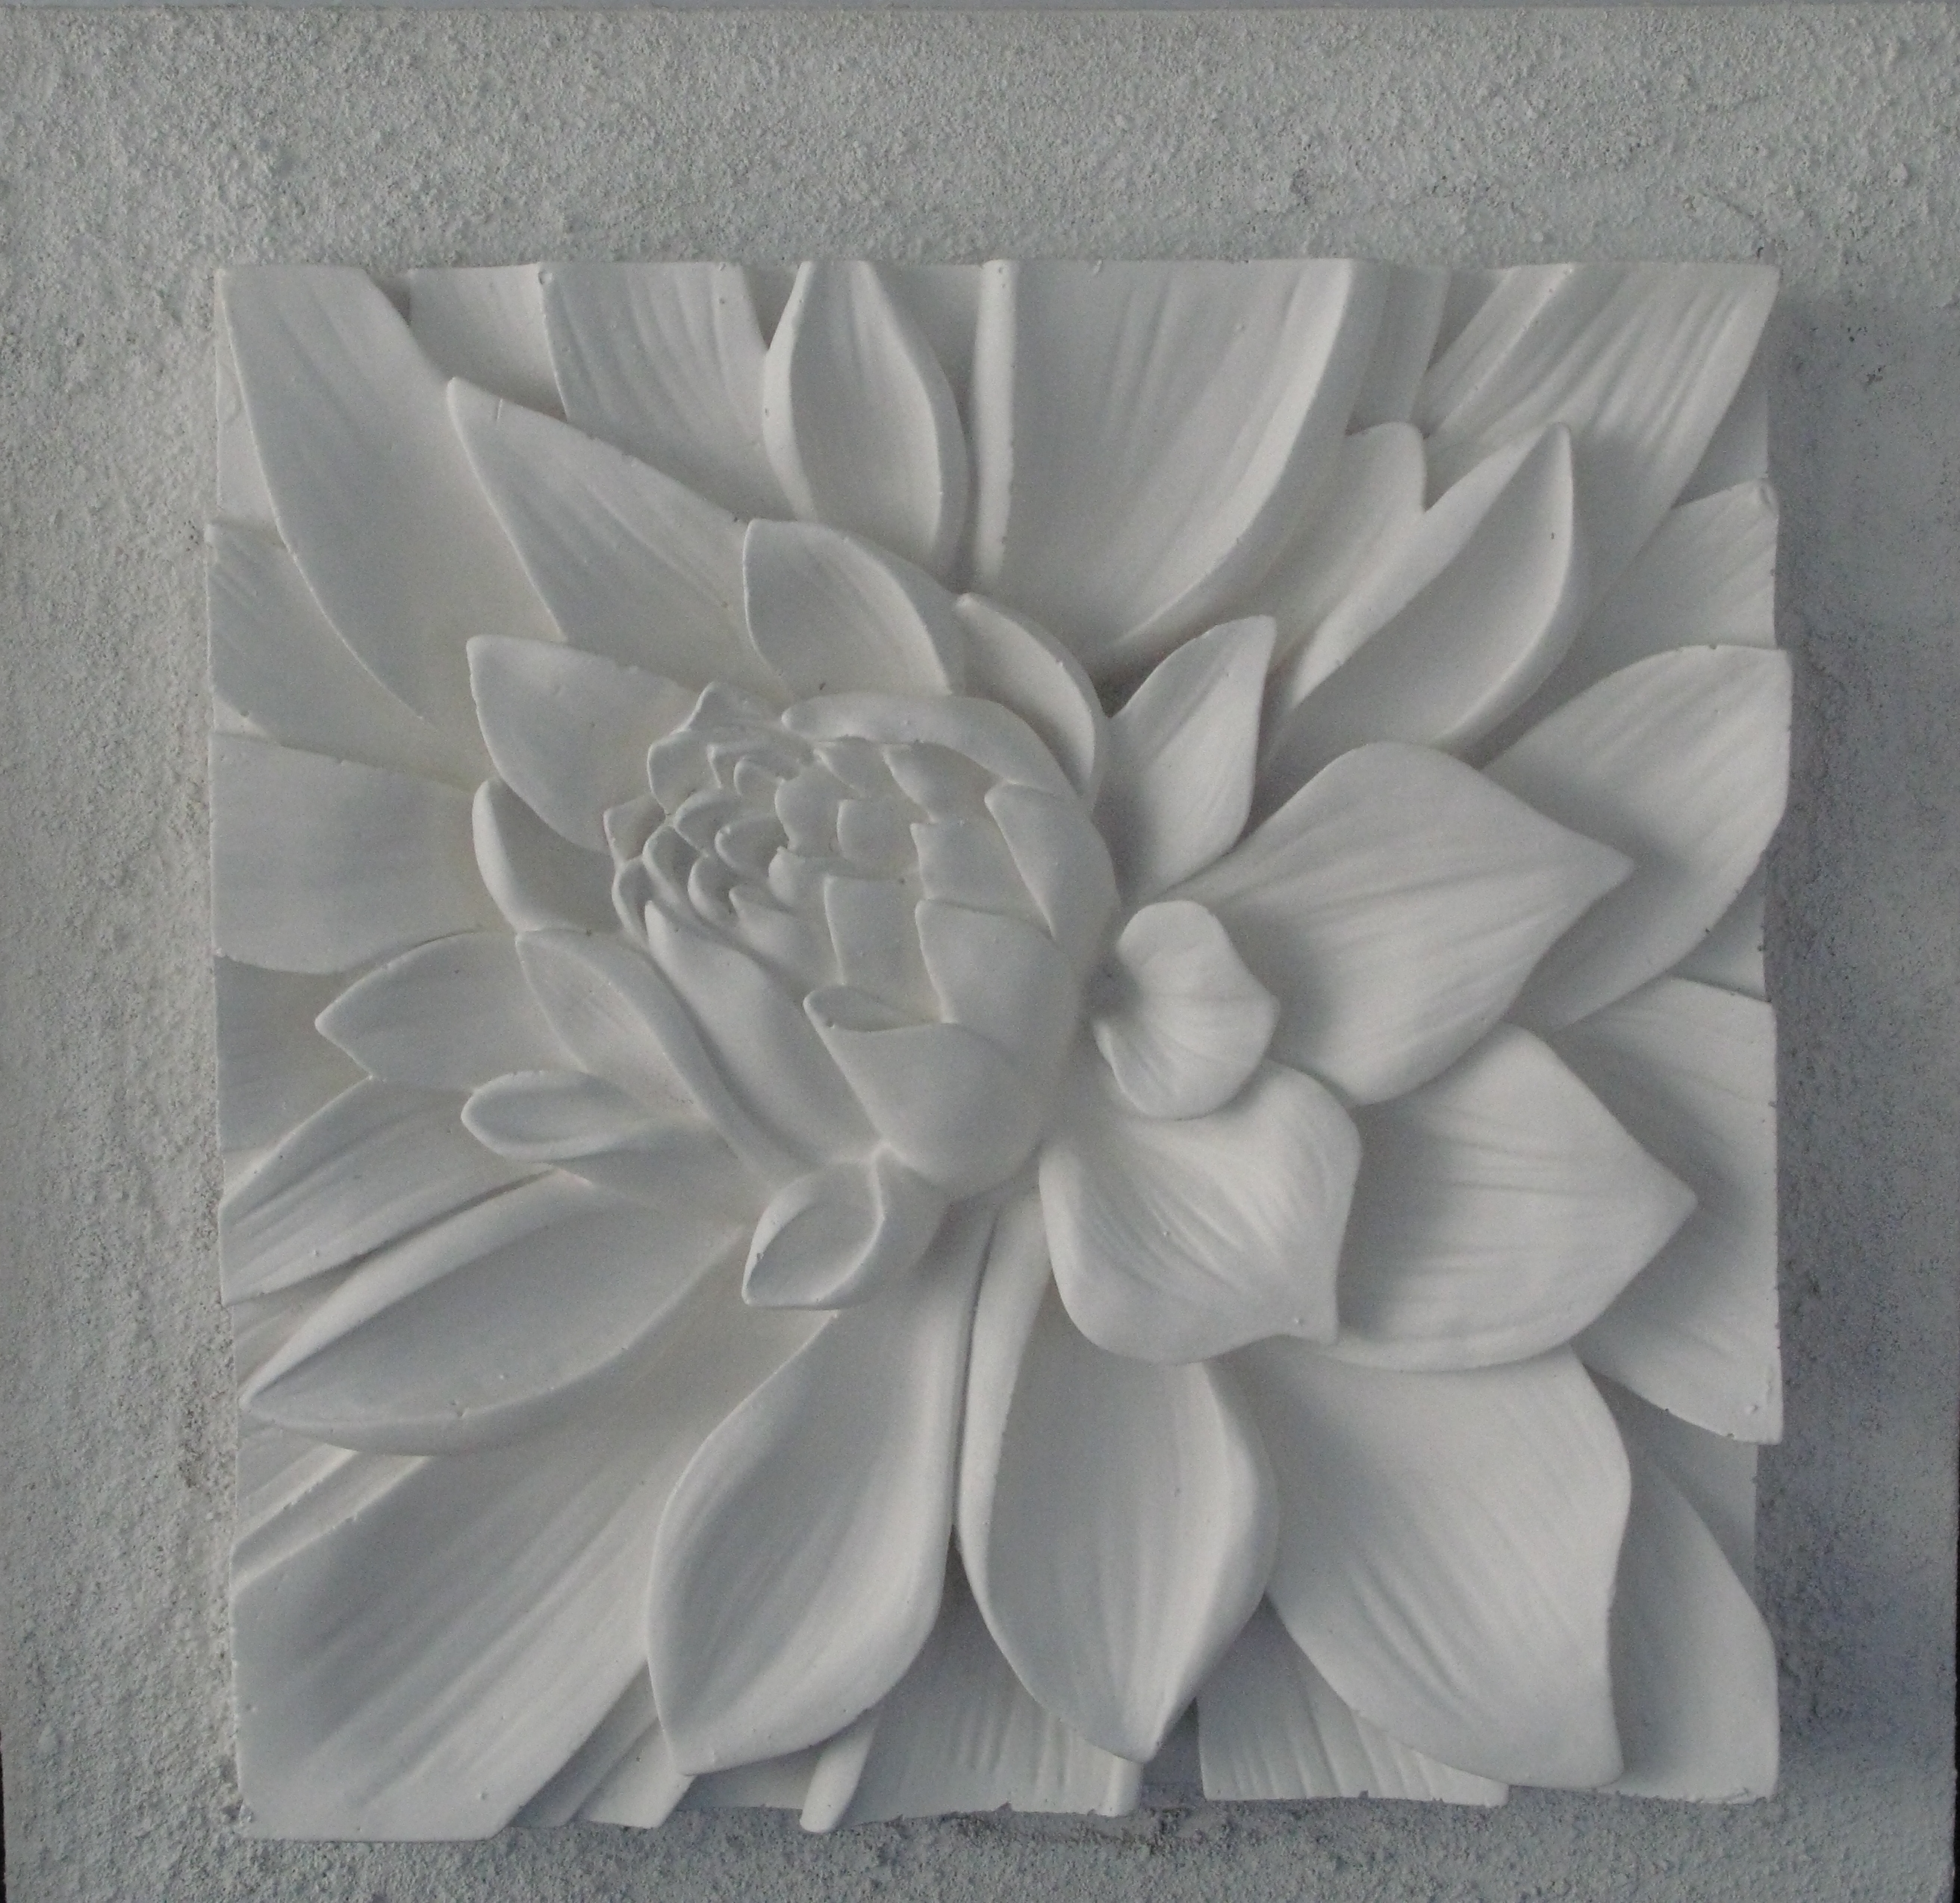 Plaster On Canvas 3D Art With Textured Background (View 12 of 15)